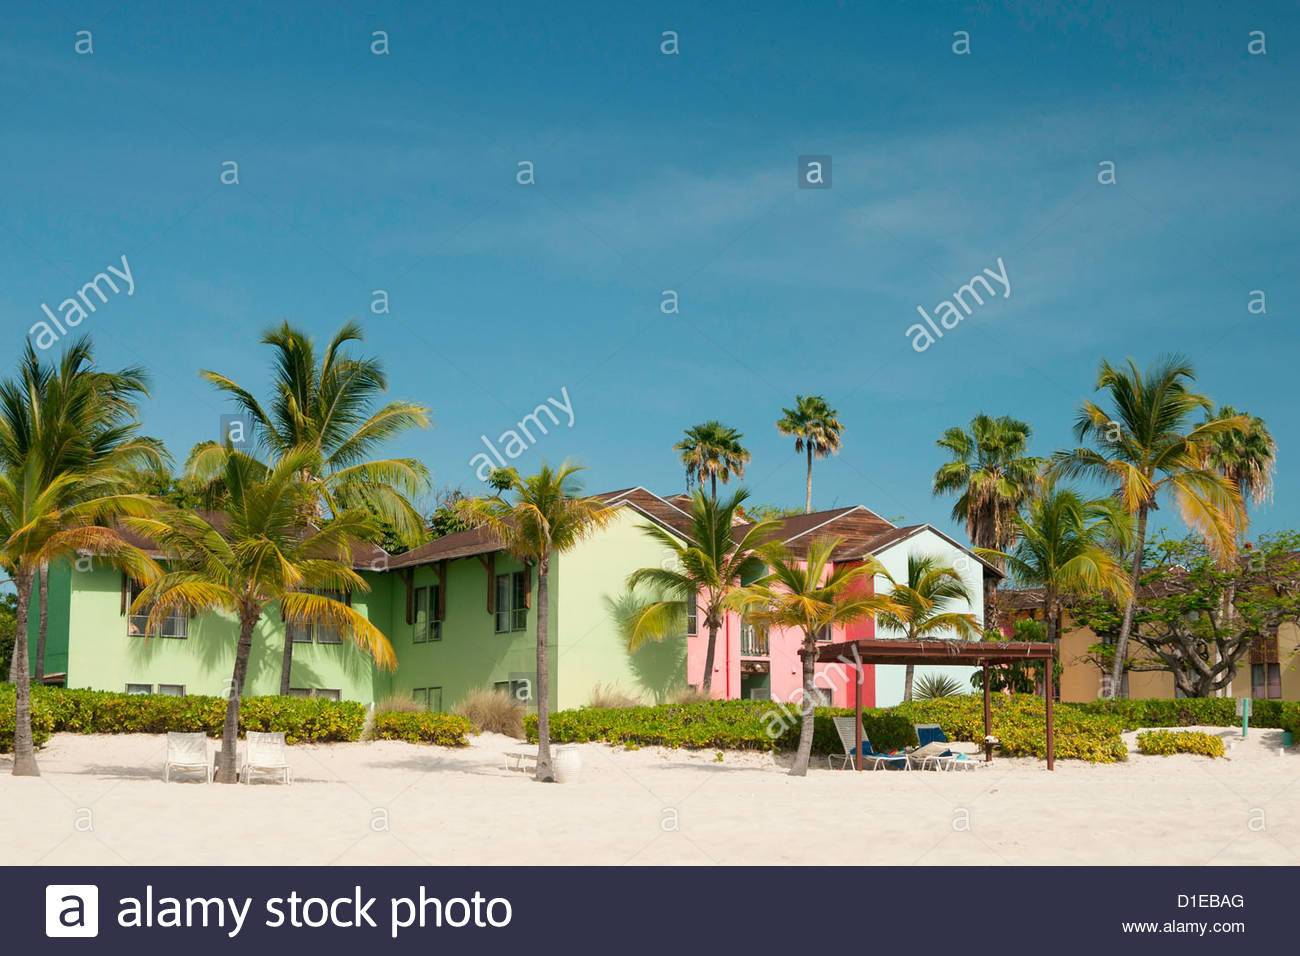 Pastel colored Caribbean homes on Grace Bay Beach, Providenciales, Turks and Caicos Islands, West Indies, Caribbean - Stock Image